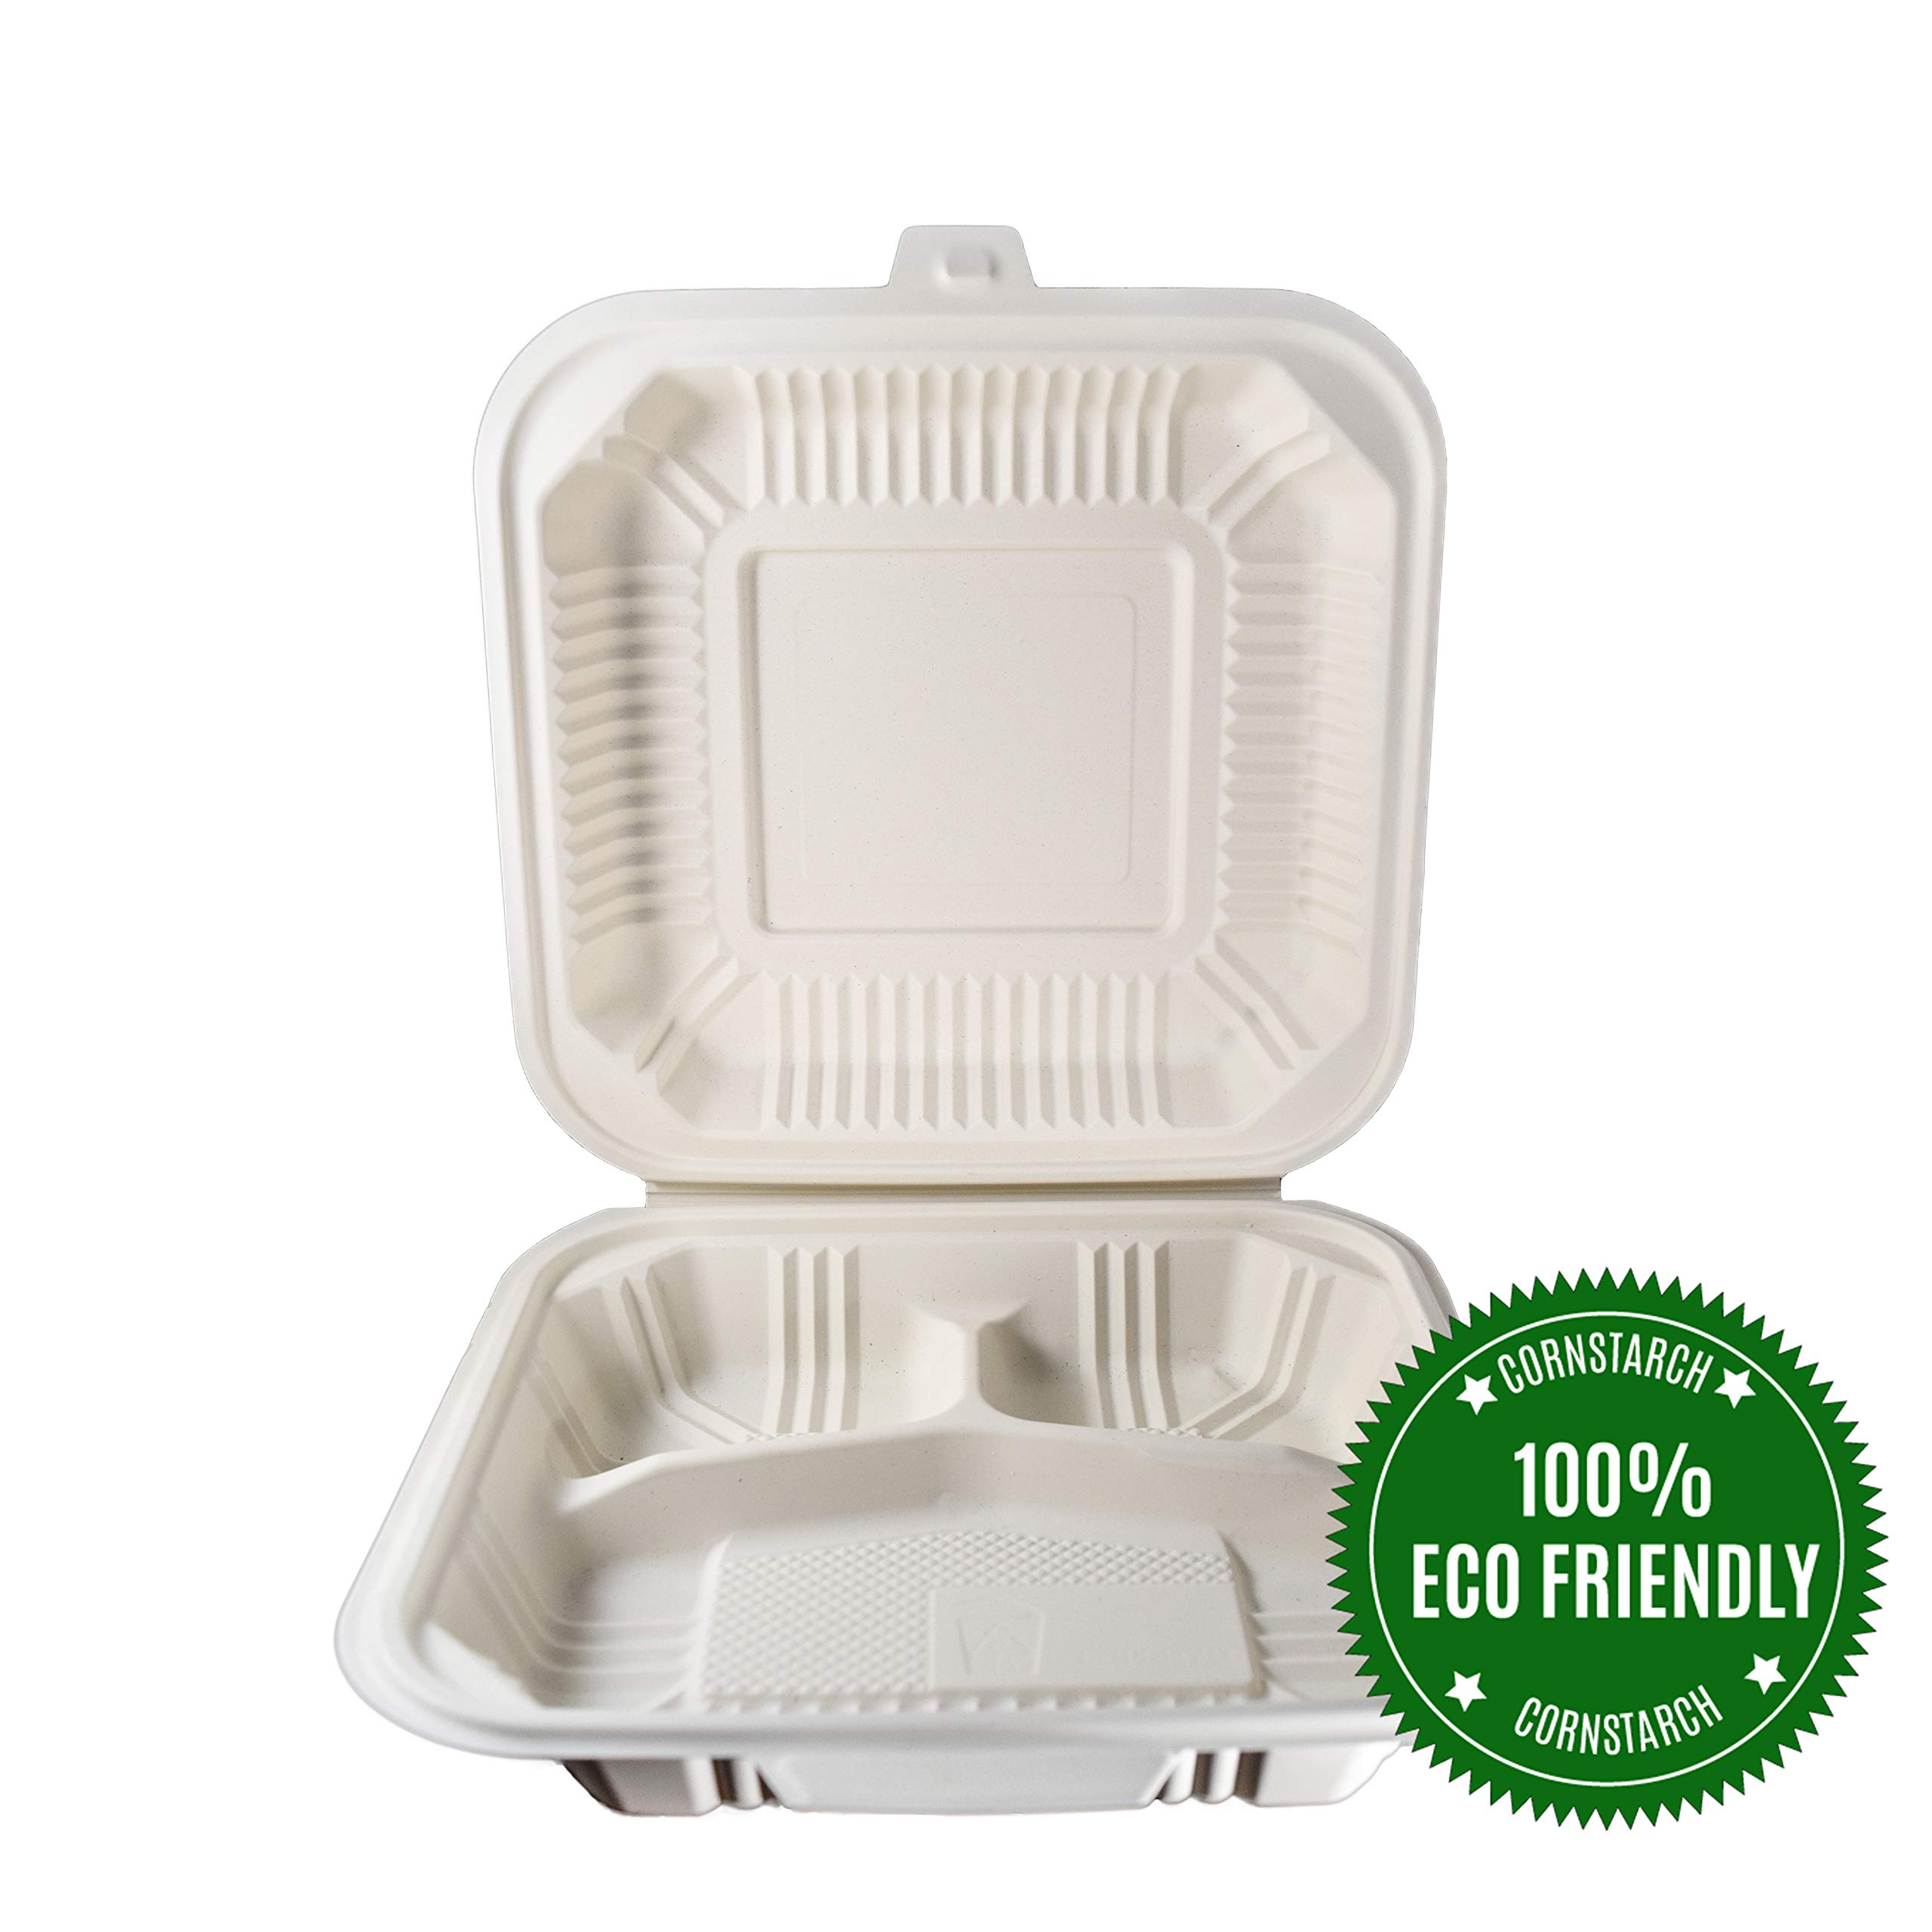 HeloGreen Eco-Friendly (8'' x 8'', 3-Compartment) Cornstarch Disposable Take Out To Go Food Containers With Lids For: Lunch Salad Meal Prep Storage Boxes Leftover, Microwave and Freezer Safe - (100 Set) by HeloGreen